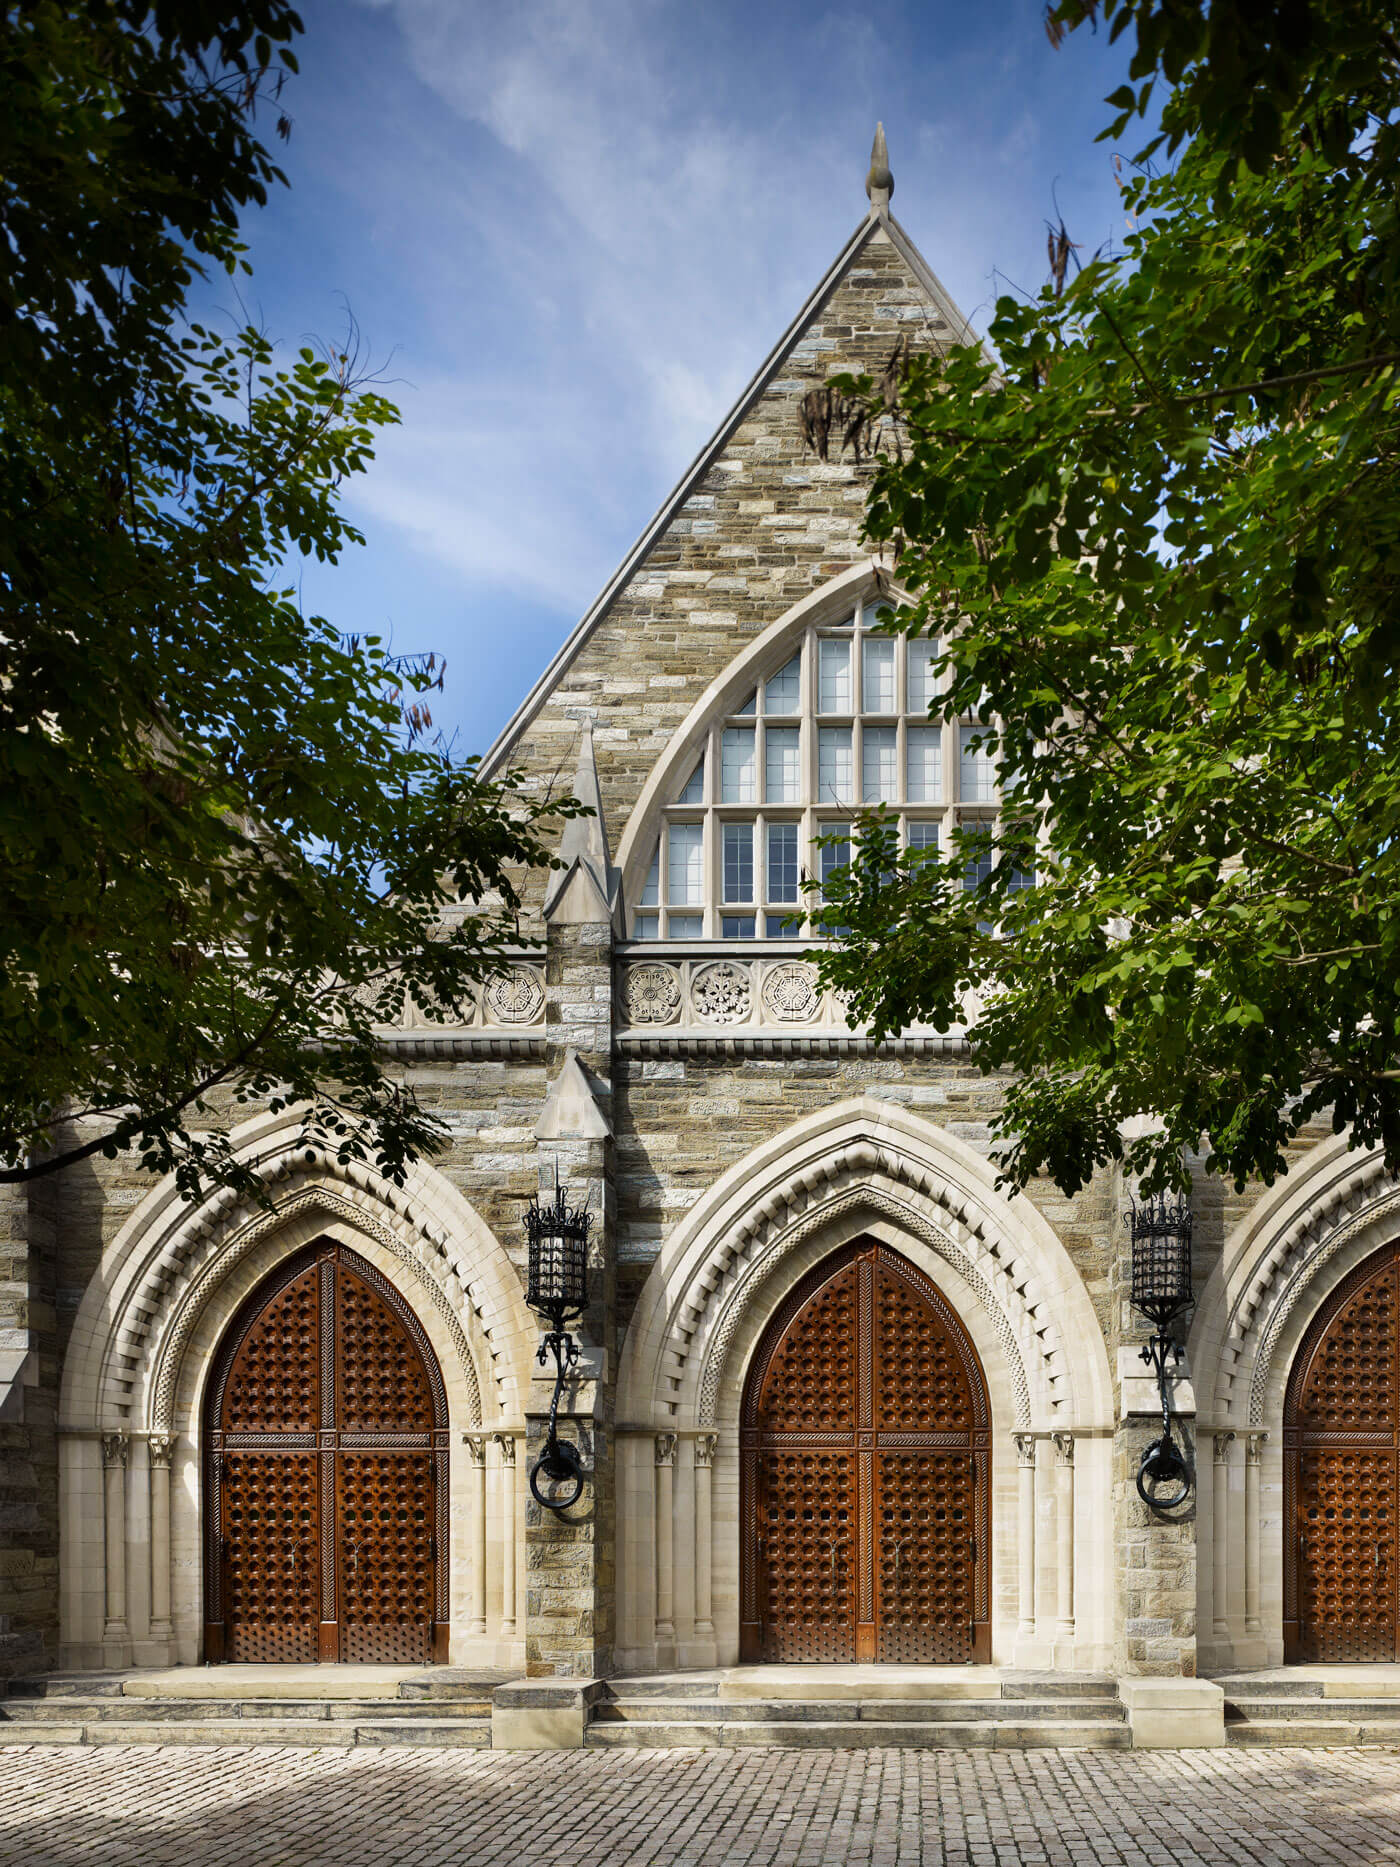 Historic entrance to Goodhart Hall with detailed, pointed stone arches and carved wooden doors.